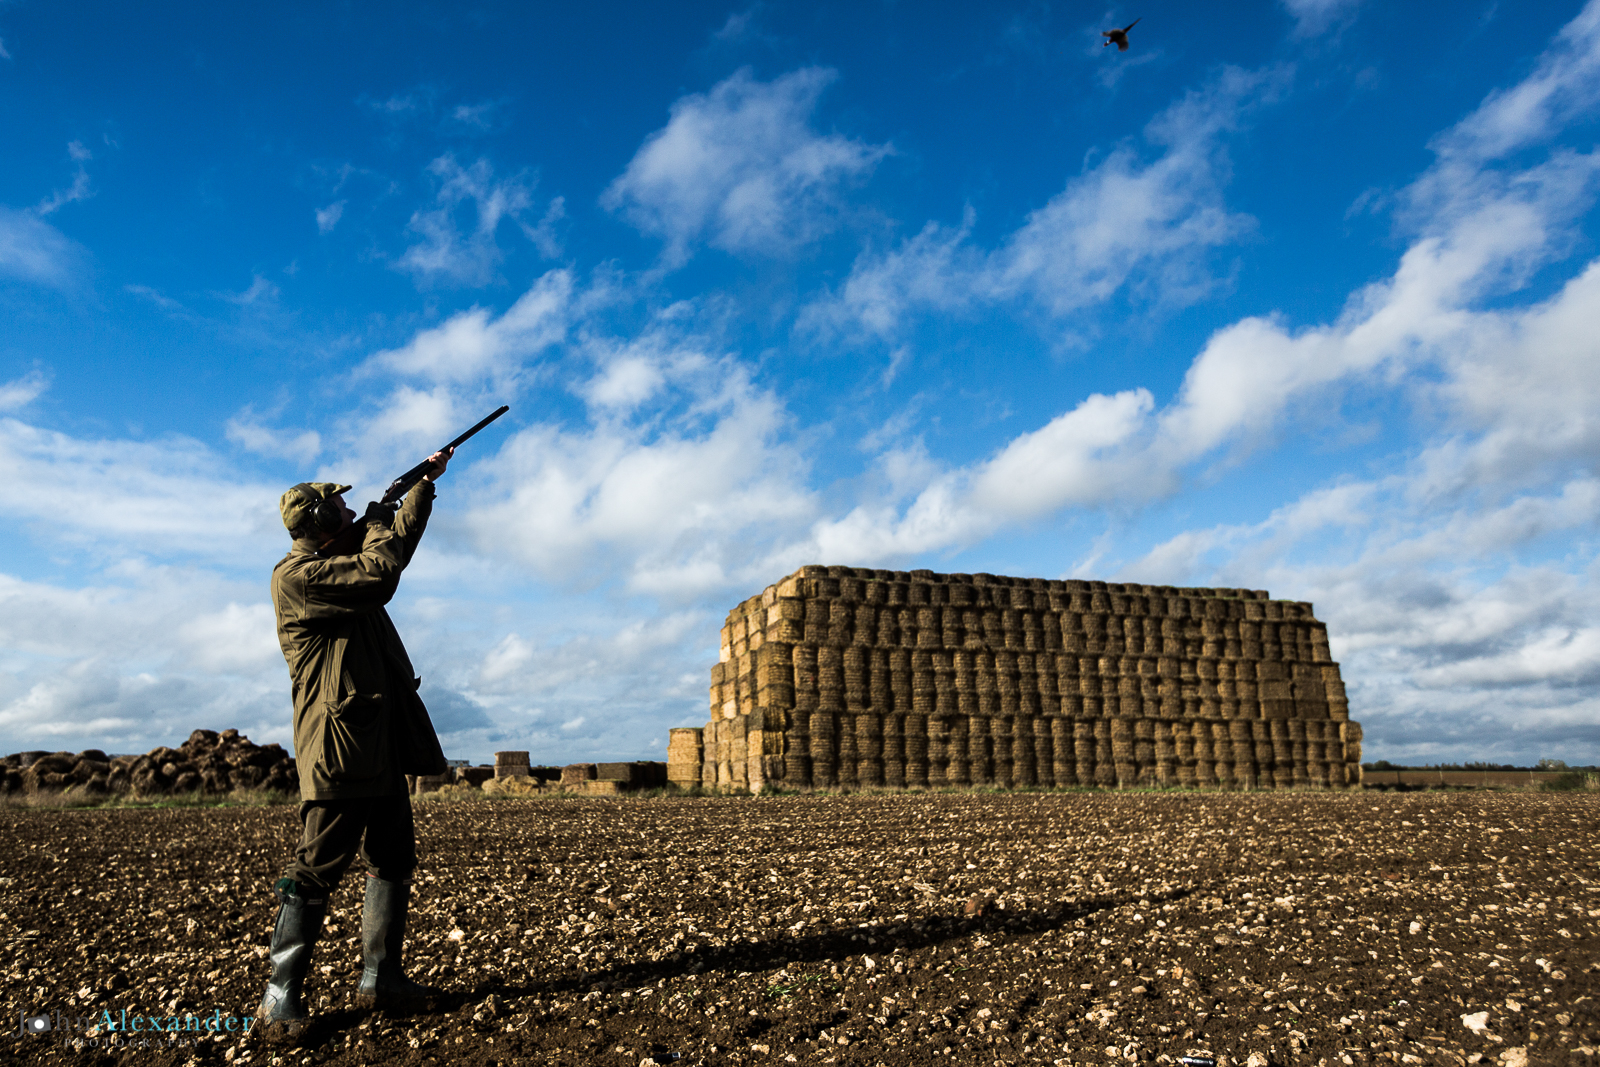 gun shoot in a filed with stack of bales behind on a pheasant shoot